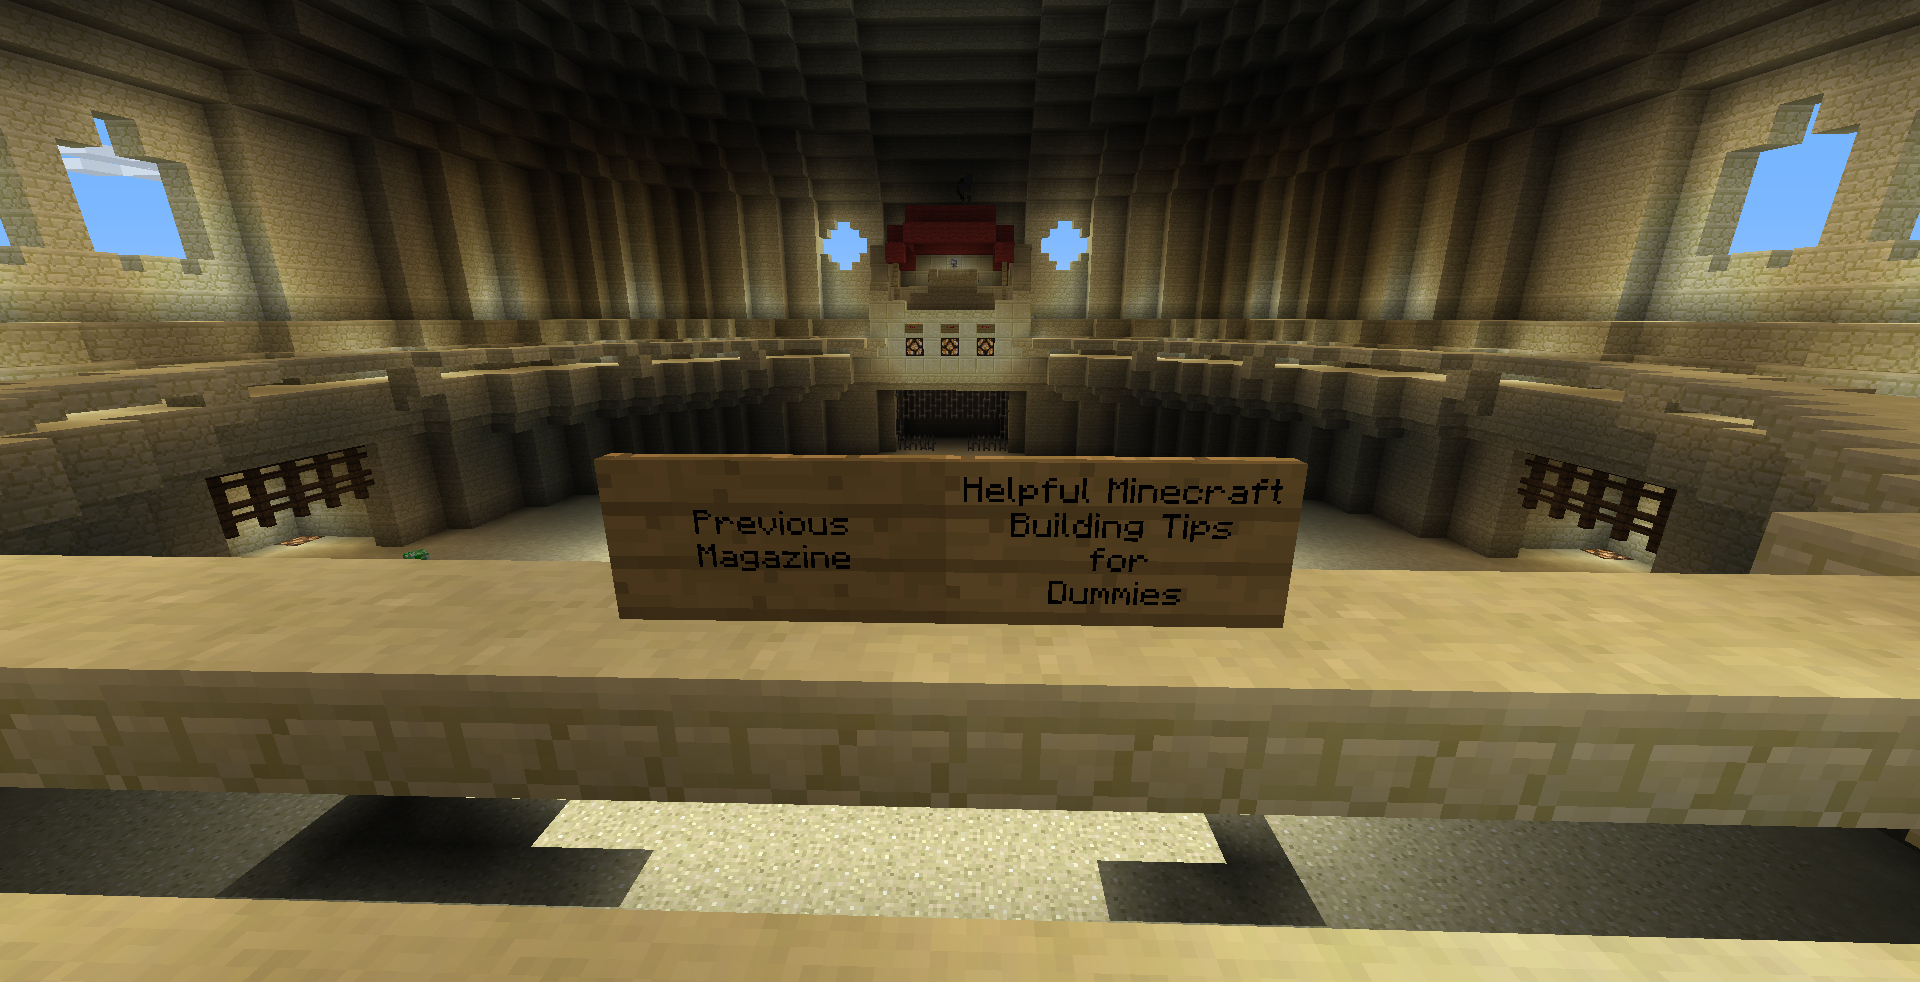 Helpful Minecraft Building Tips for Dummies 1